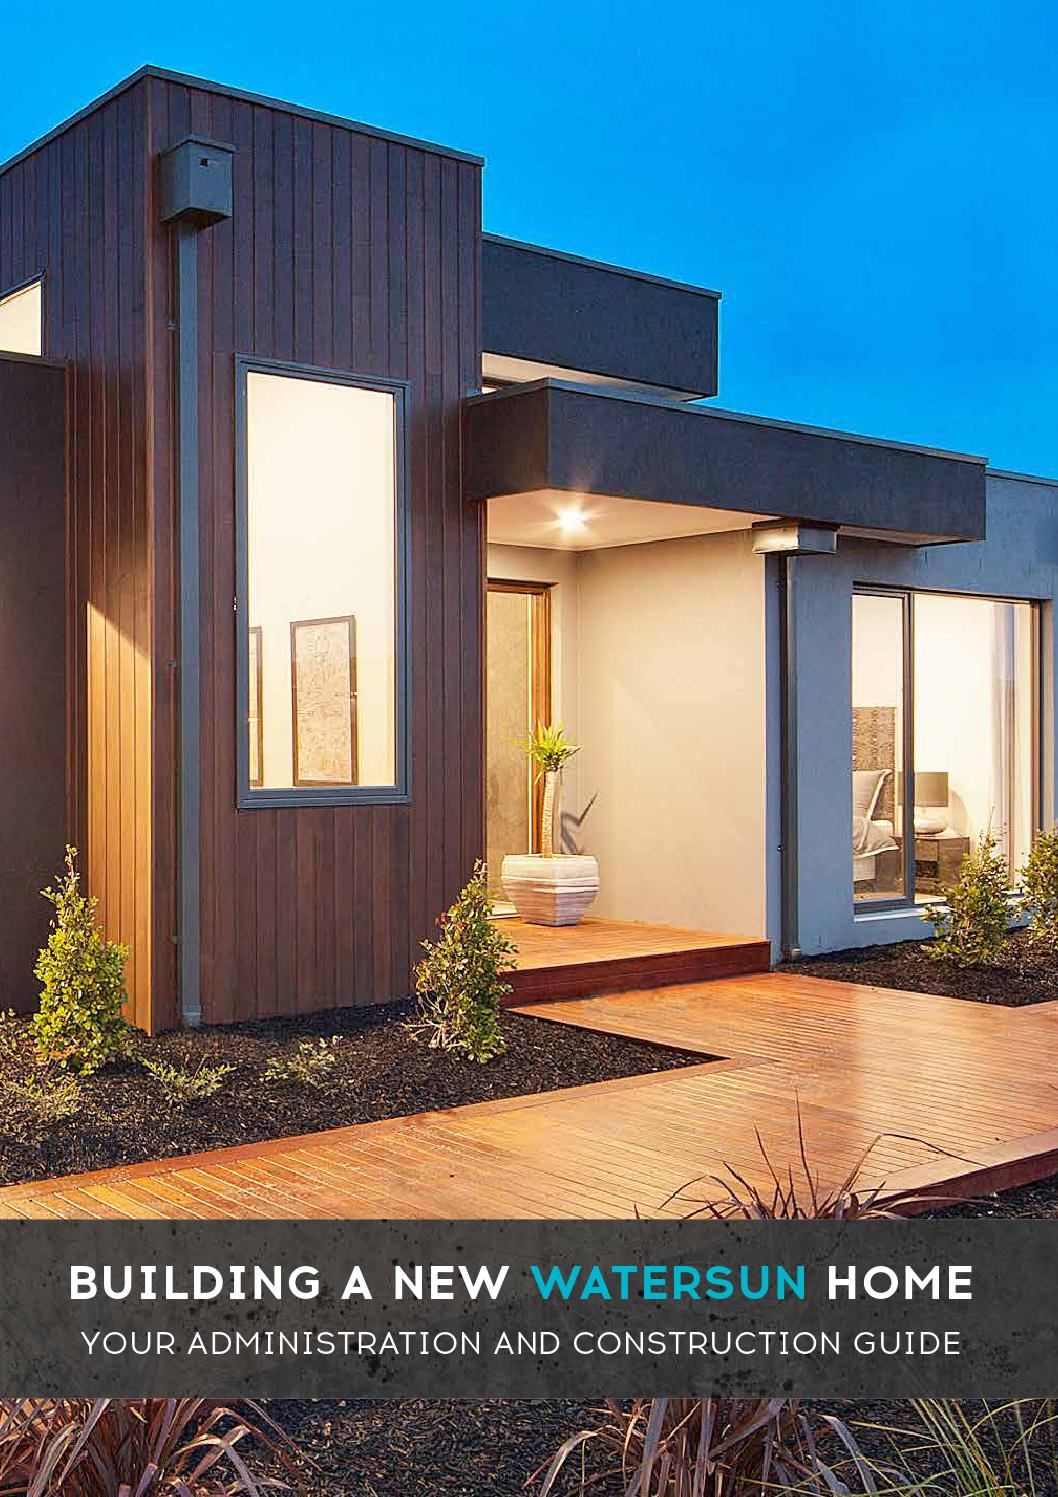 Building a new watersun home your administration and for Home building guide